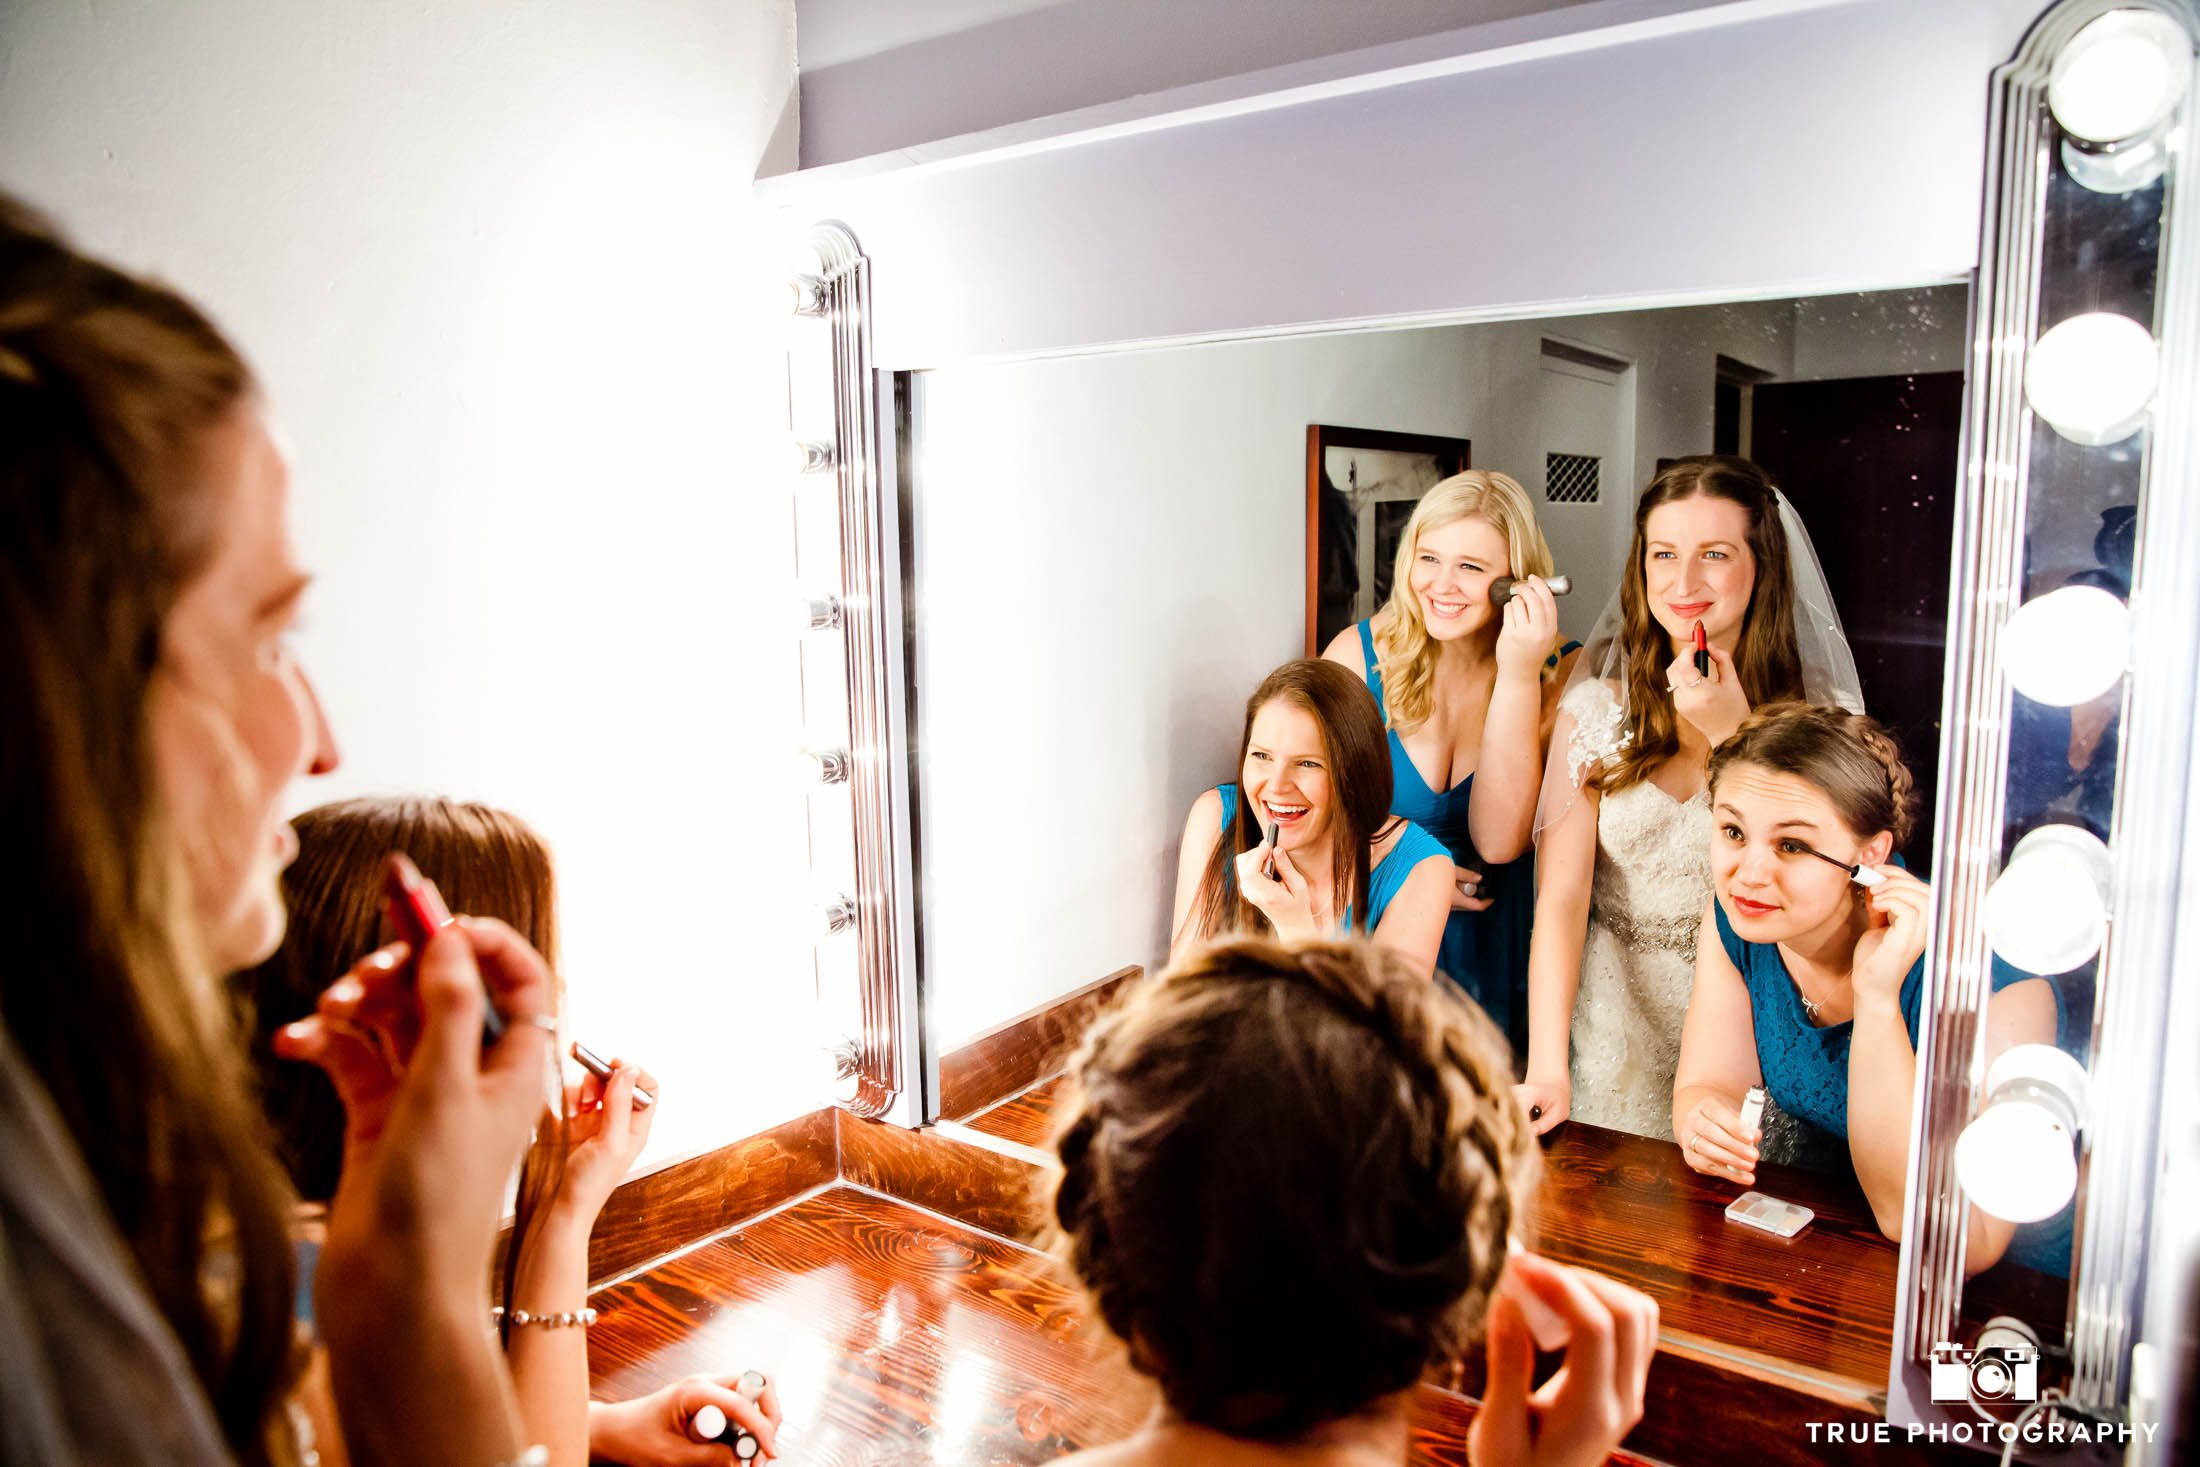 Bridesmaids share mirror with bride on wedding day